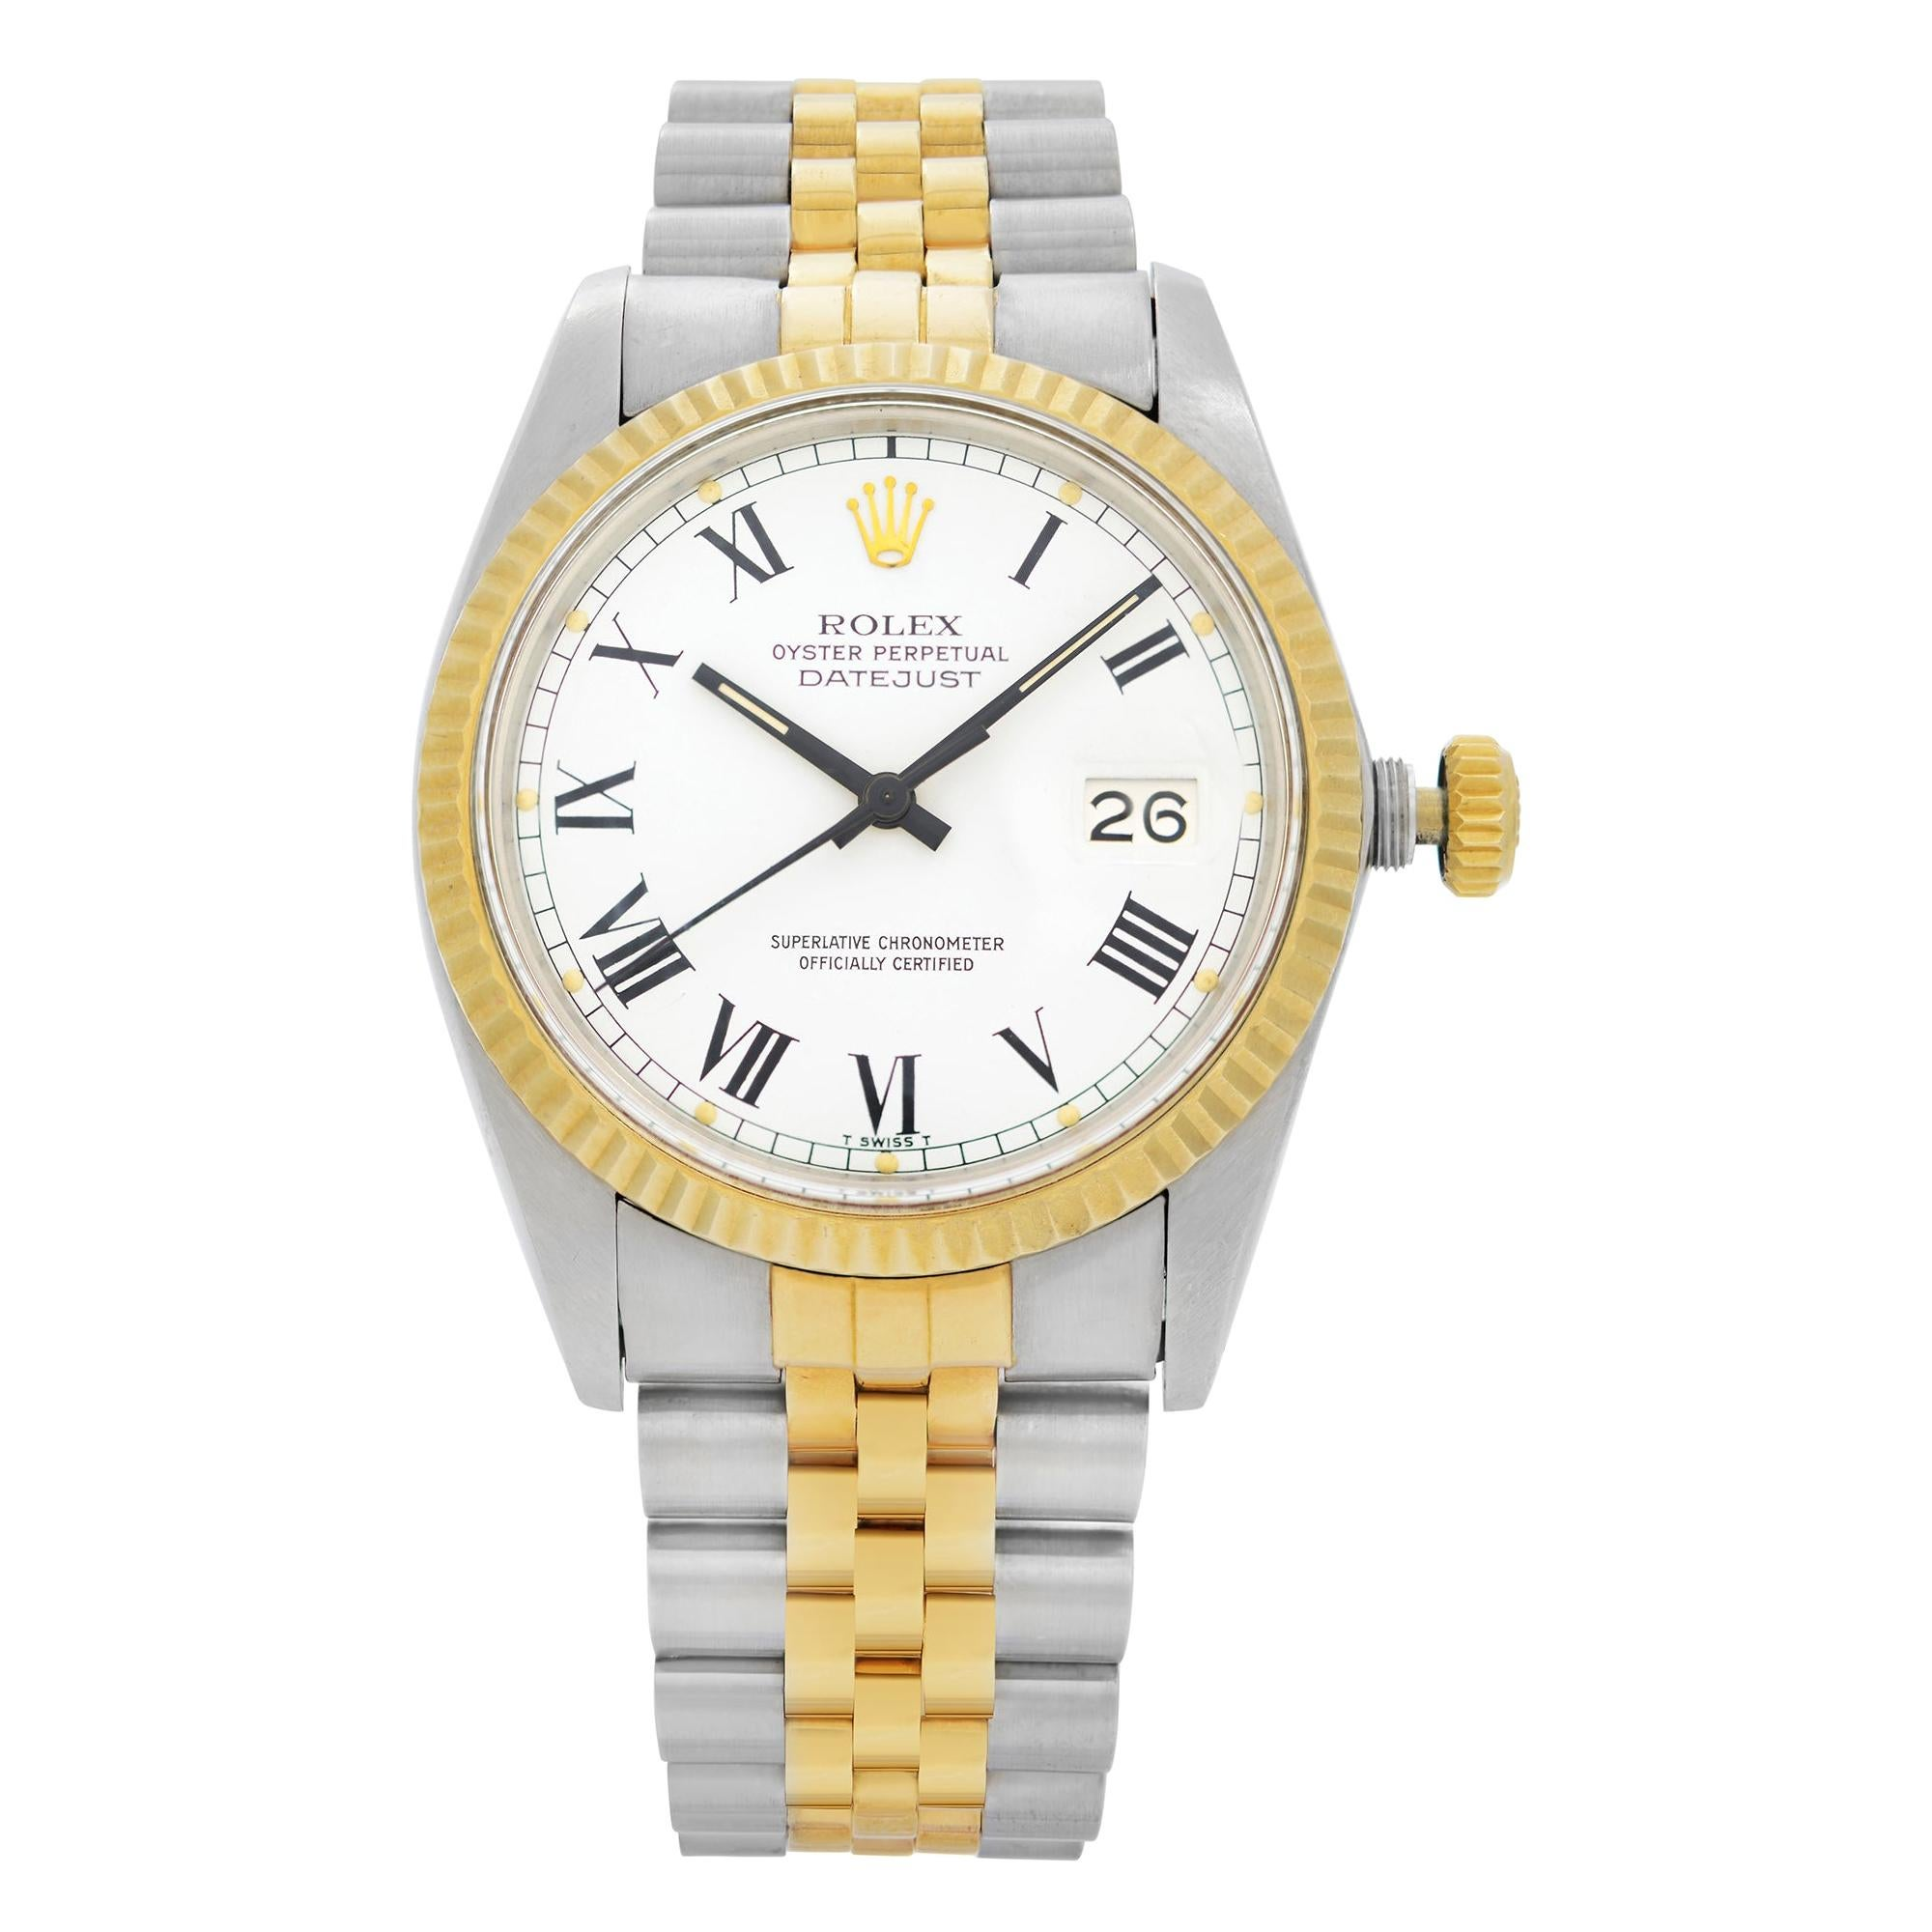 Rolex Datejust 18k Yellow Gold Steel White Dial Automatic Men's Watch 16013